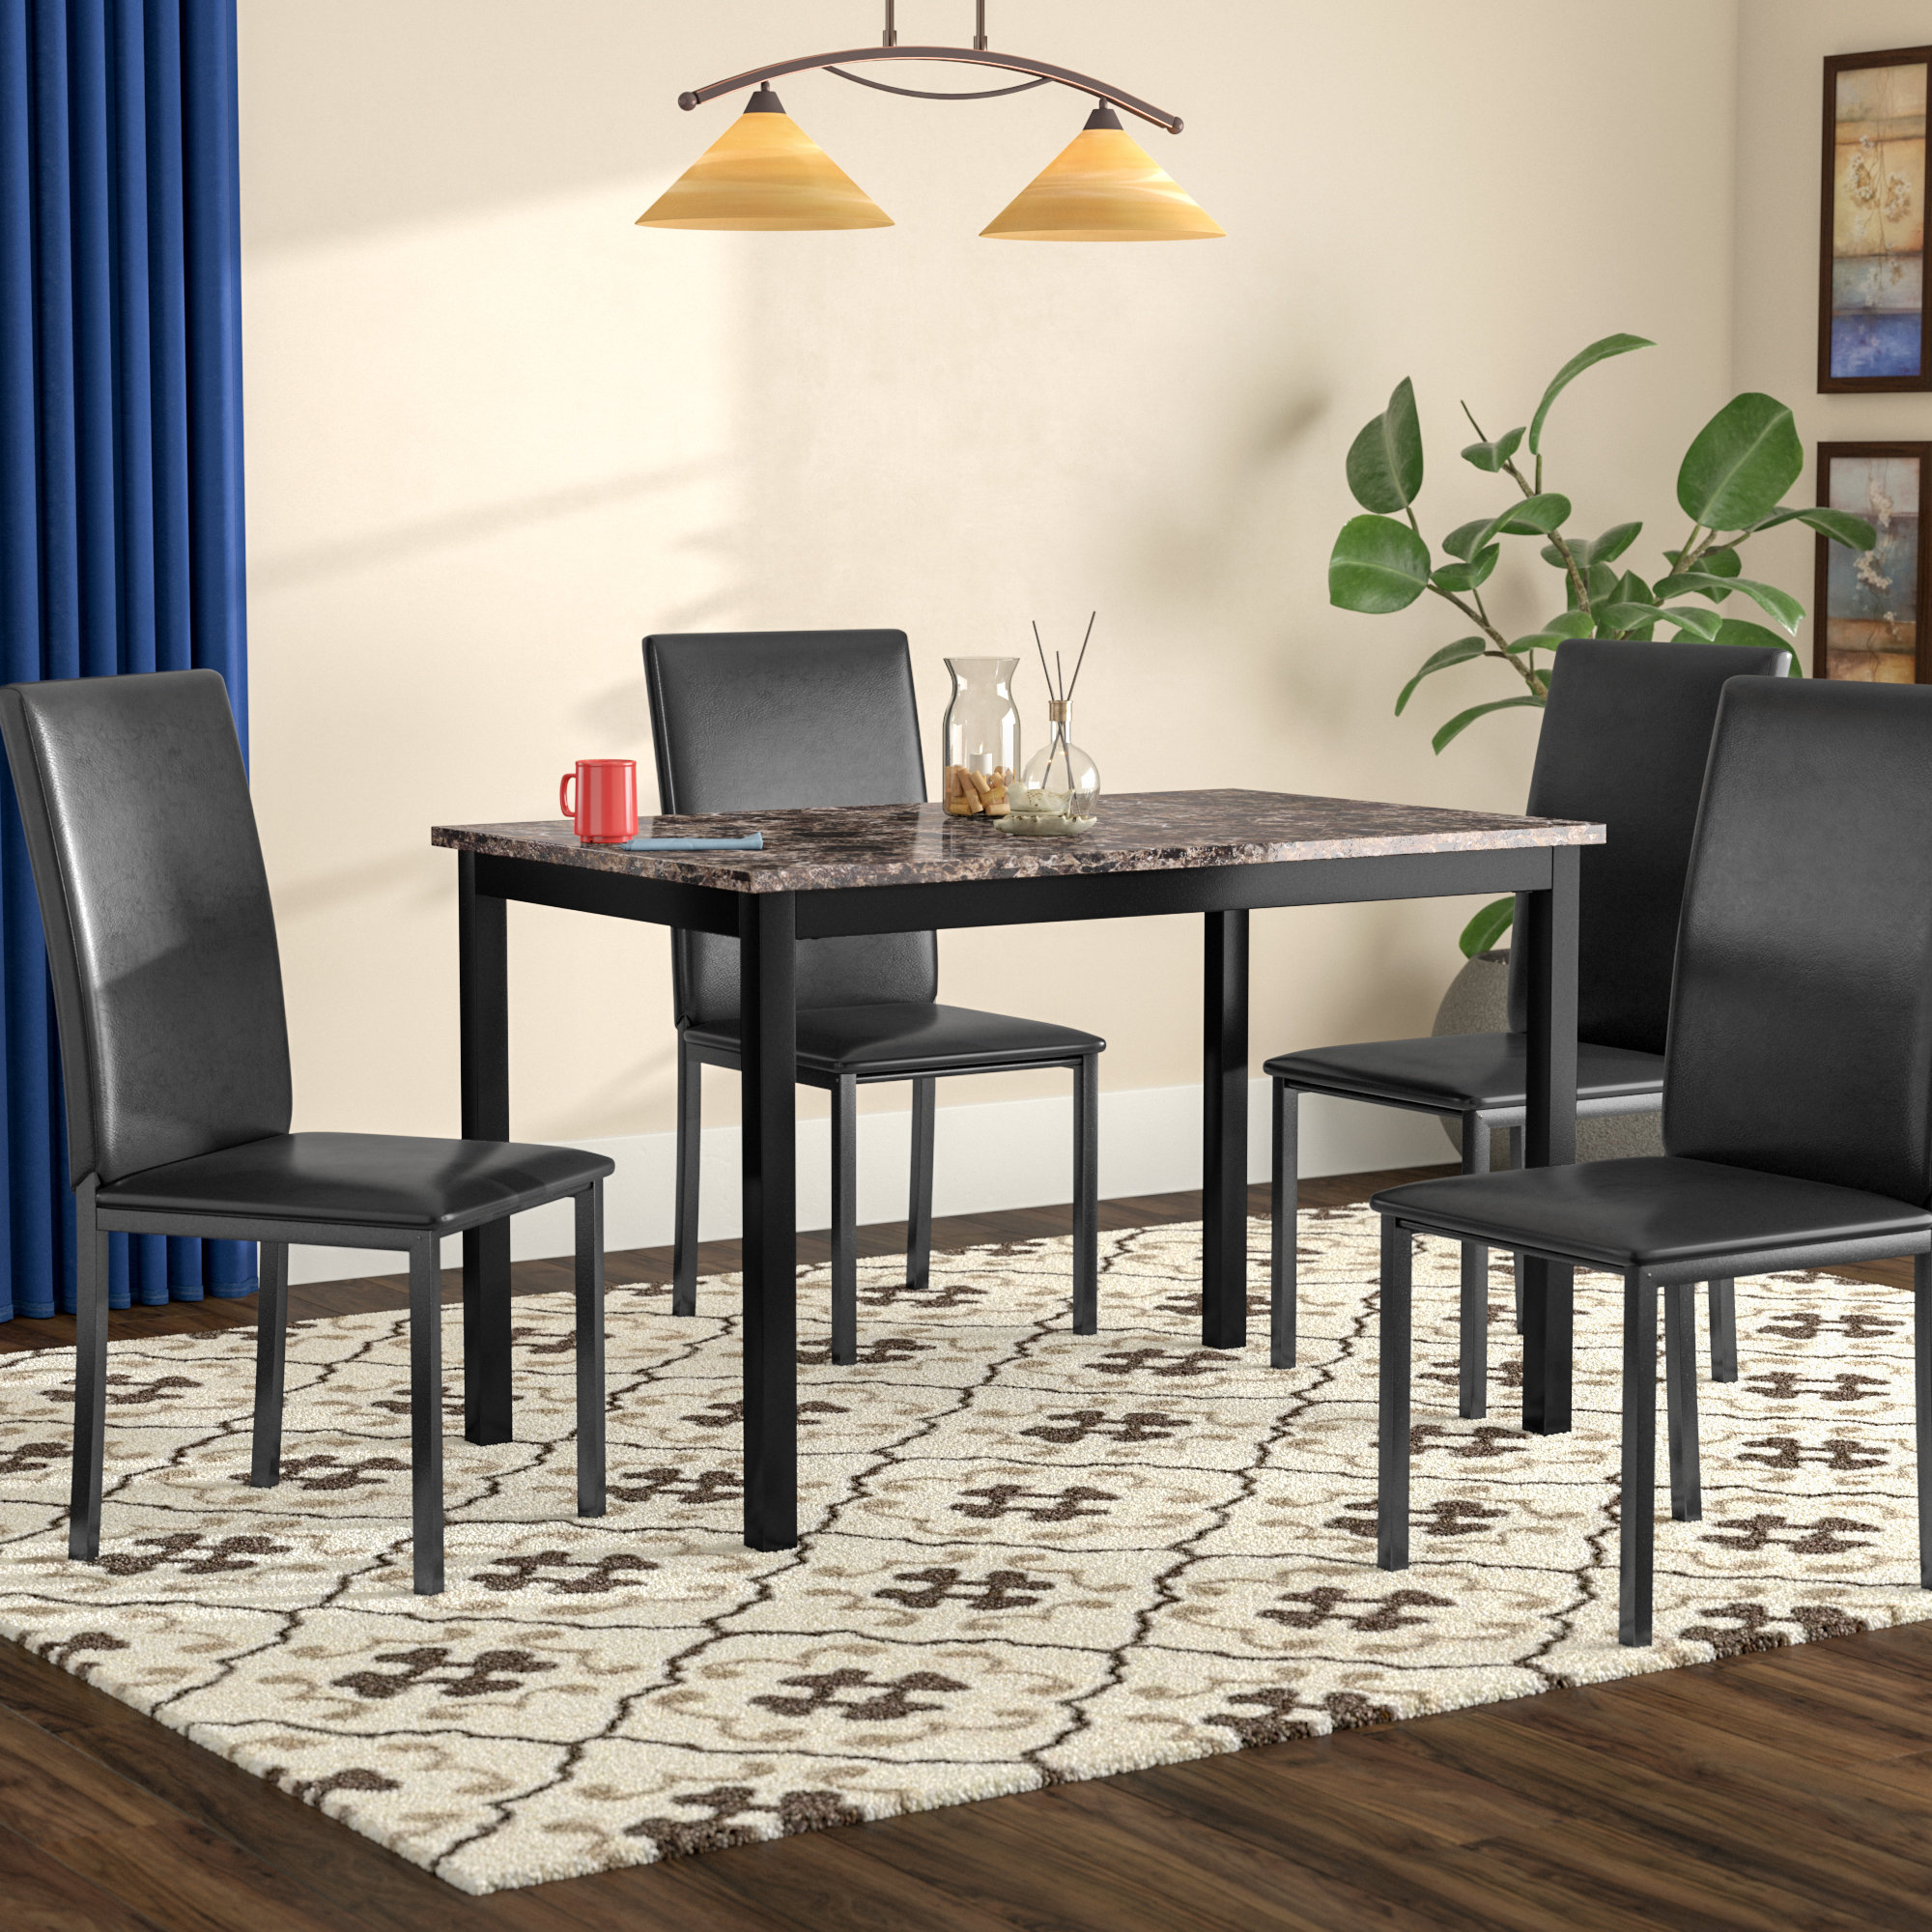 Red Barrel Studio Noyes 5 Piece Dining Set & Reviews | Wayfair Throughout Most Up To Date Noyes 5 Piece Dining Sets (Photo 2 of 20)